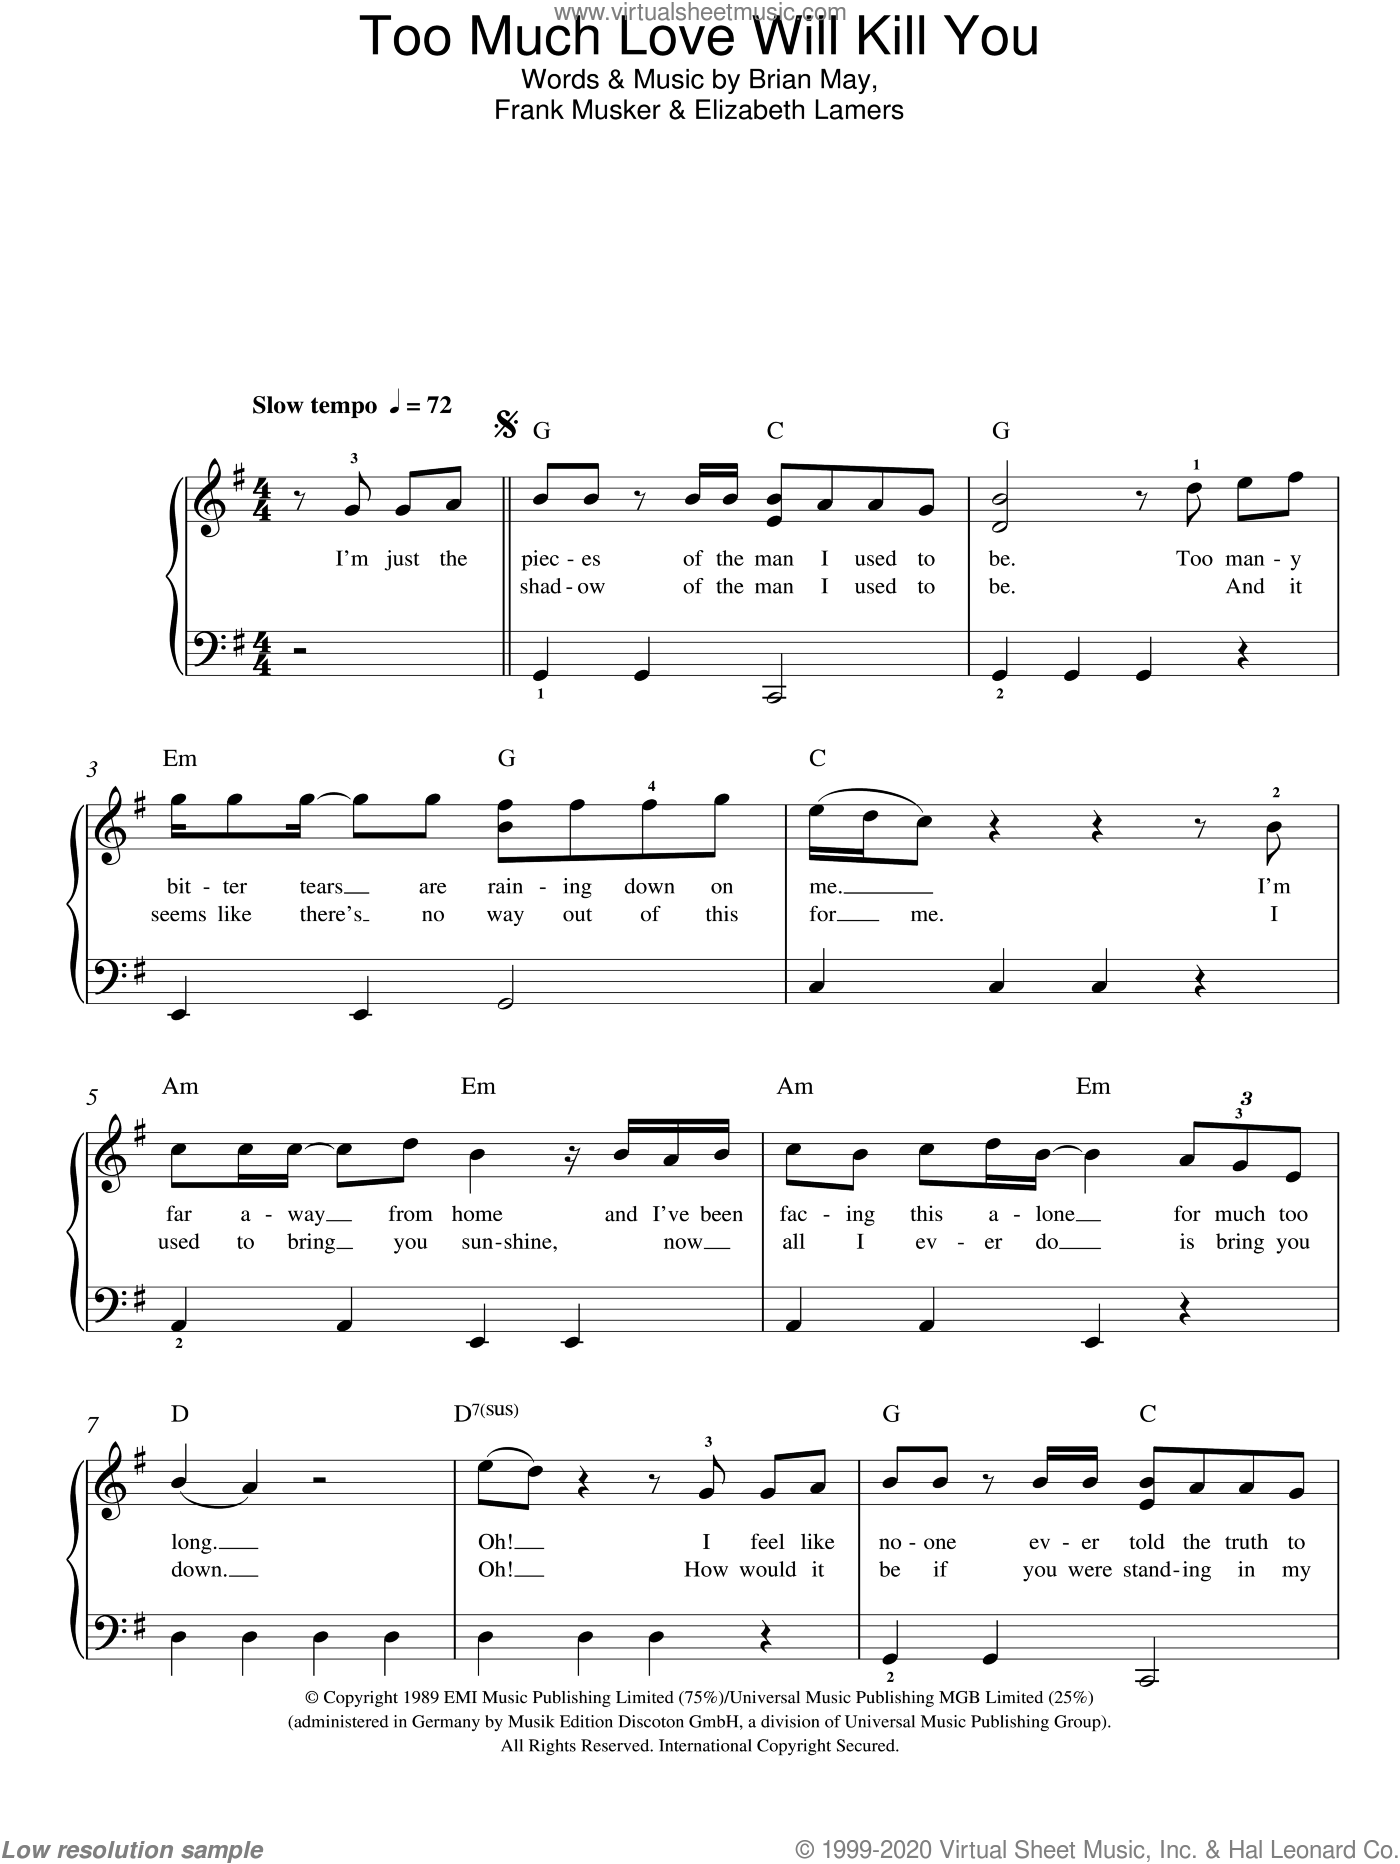 Too Much Love Will Kill You sheet music for piano solo by Queen, Brian May, Elizabeth Lamers and Frank Musker, easy